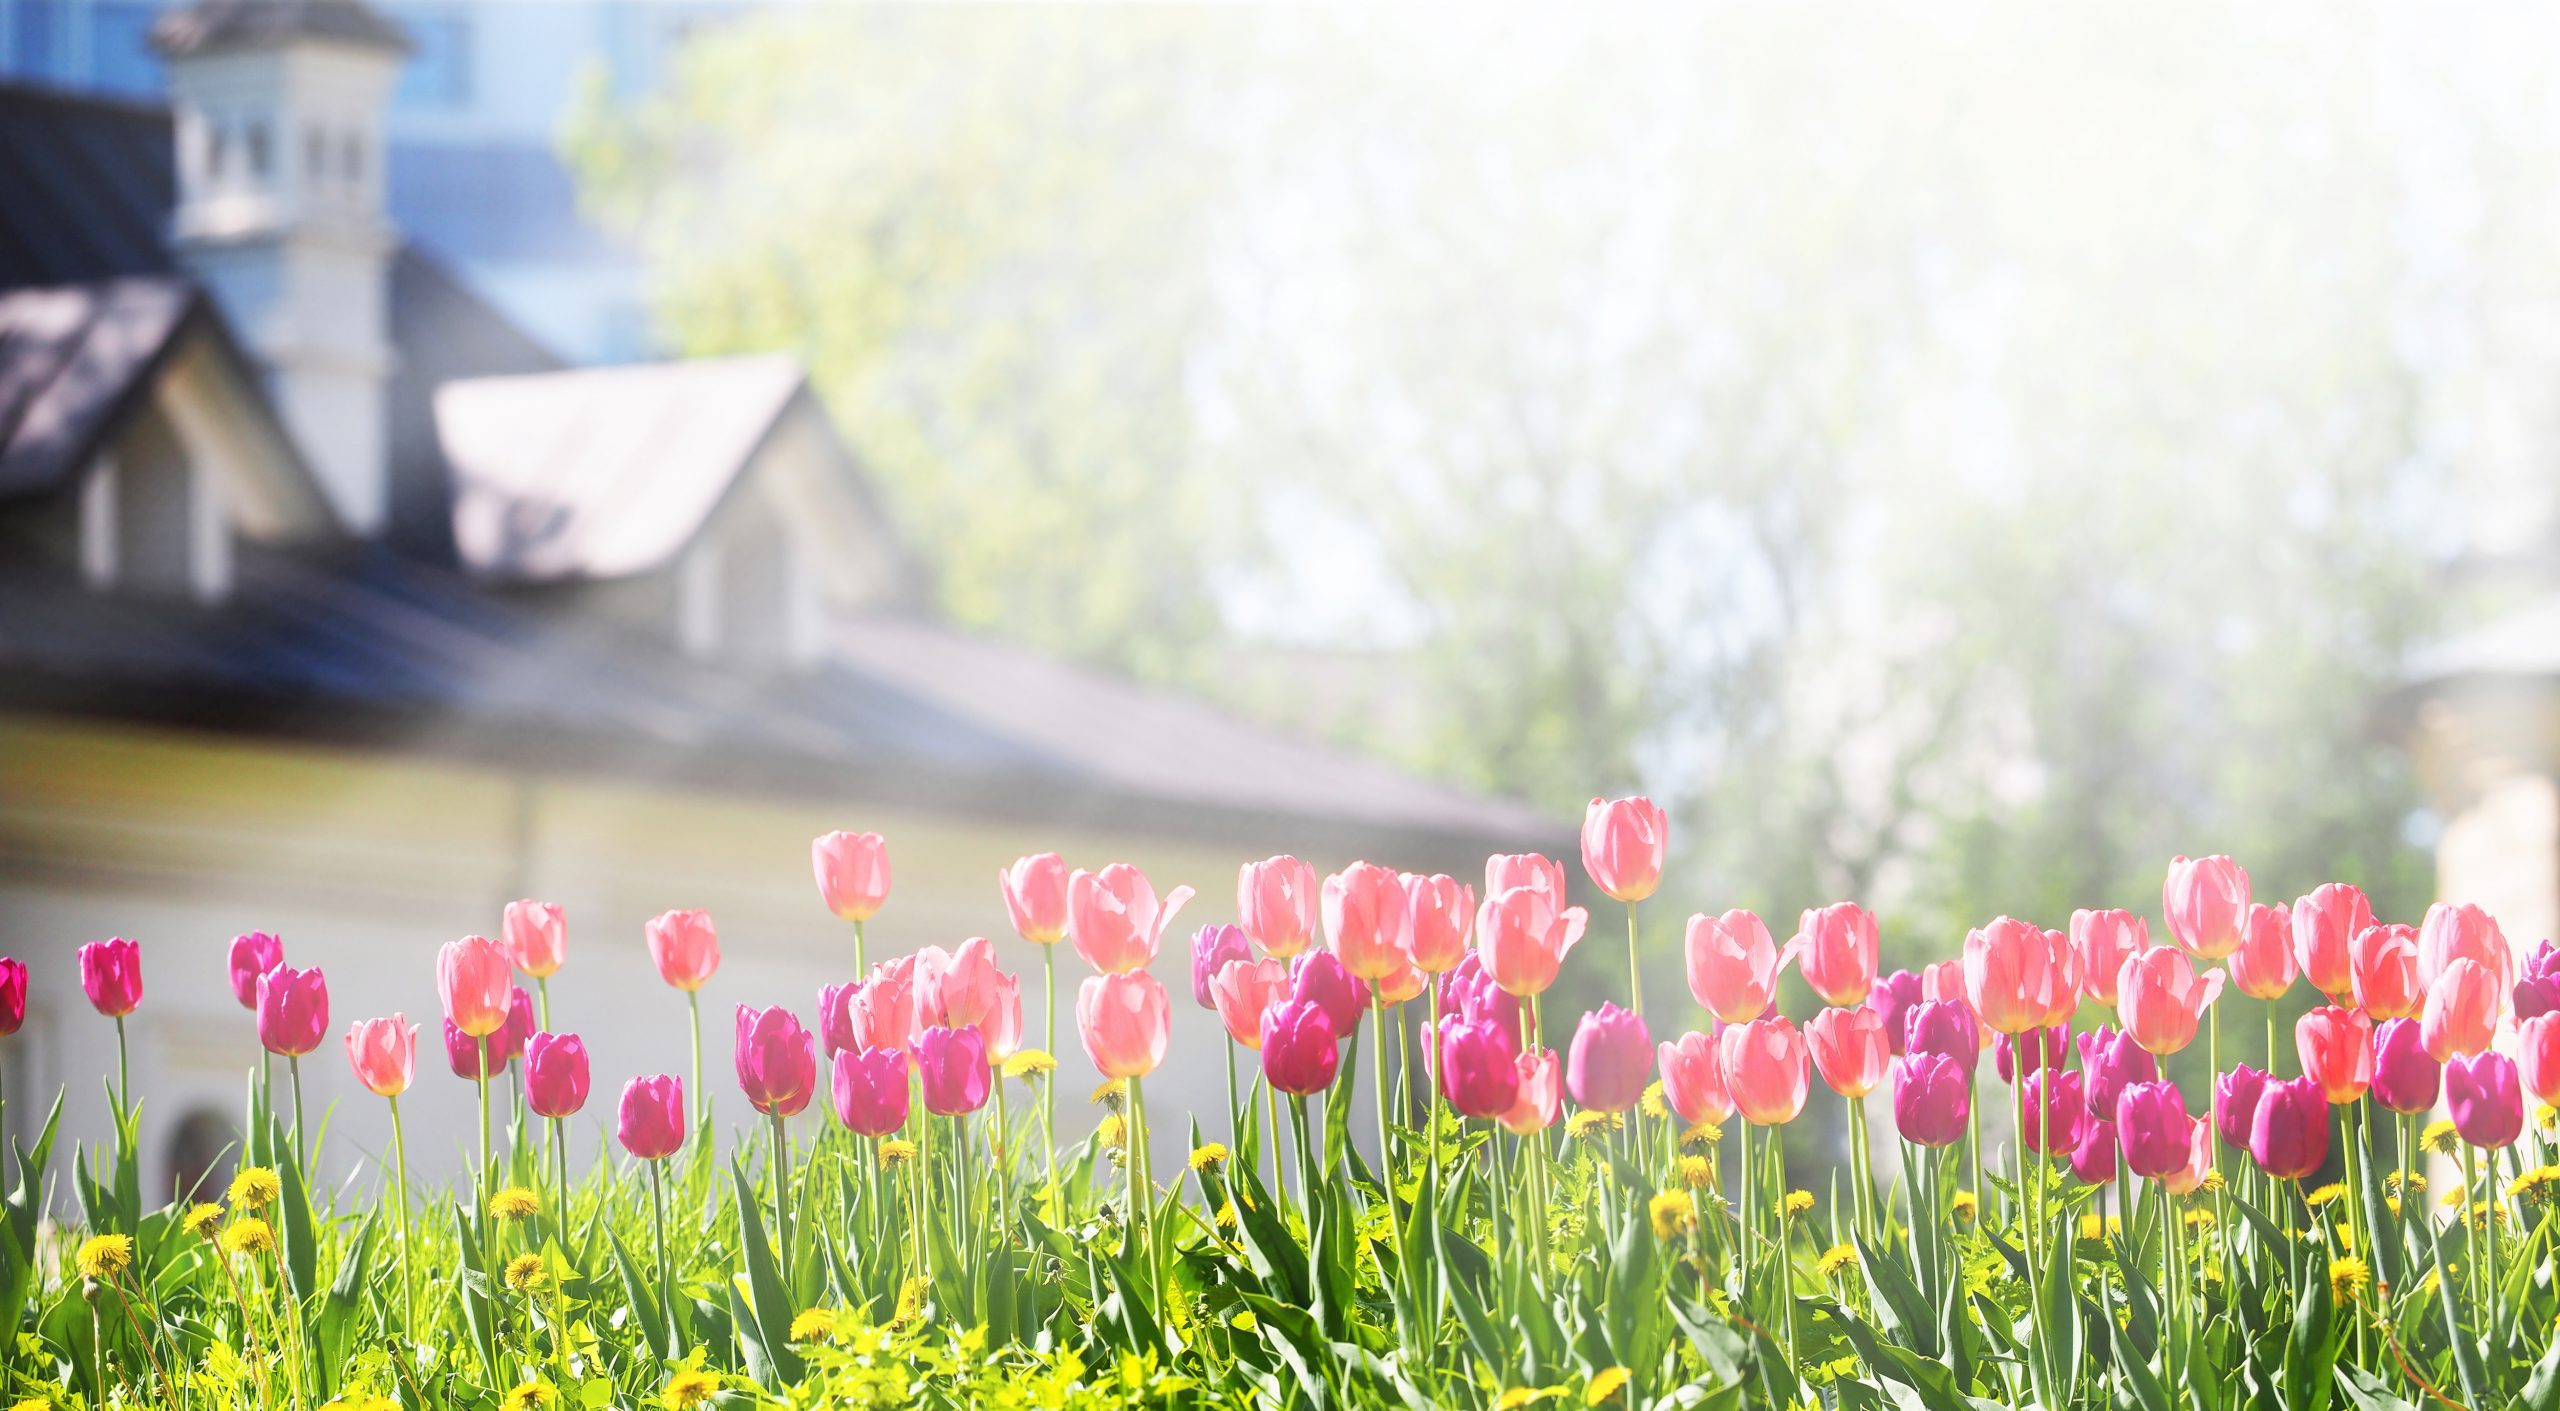 A flower bed with pink and purple tulips in the rays of sunlight against the backdrop of a beautiful white house with a sloping roof. Gardening, panoramic view